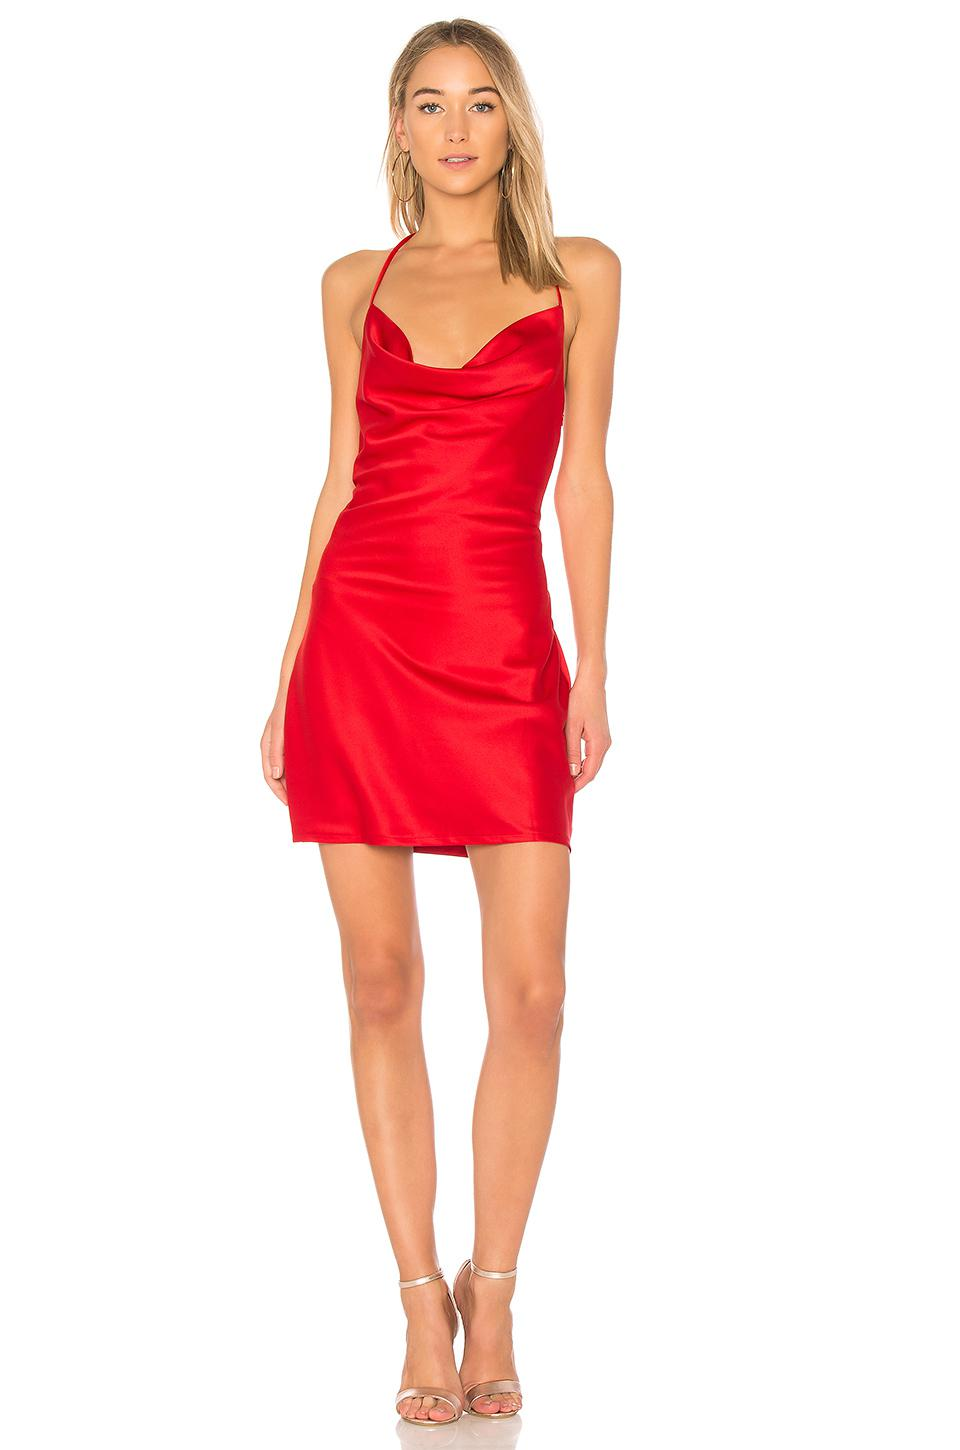 5b0d86f85574c Wyldr Superstitious Cowl Neck Slip Dress in Red - Lyst